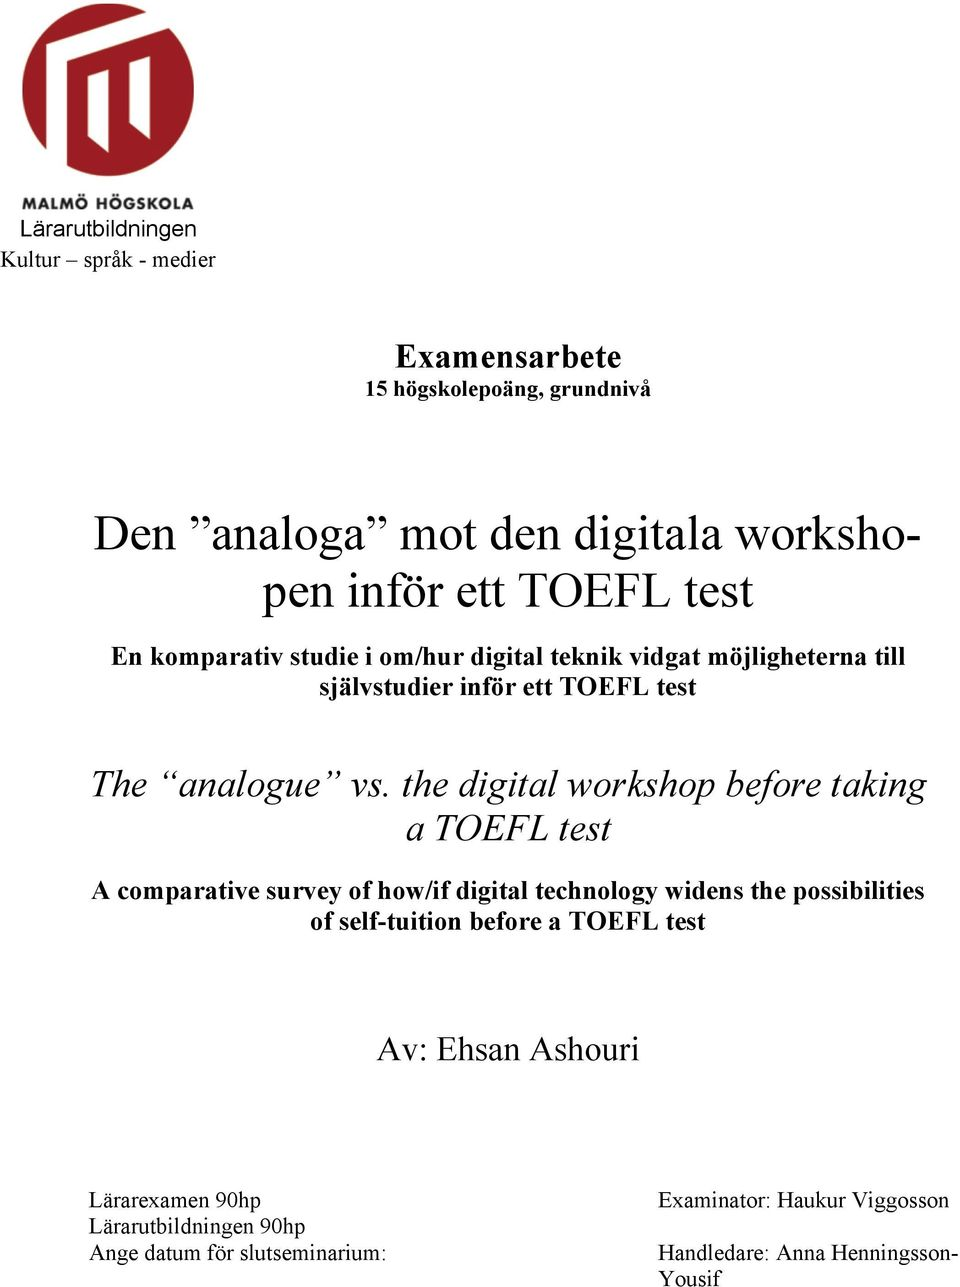 the digital workshop before taking a TOEFL test A comparative survey of how/if digital technology widens the possibilities of self-tuition before a